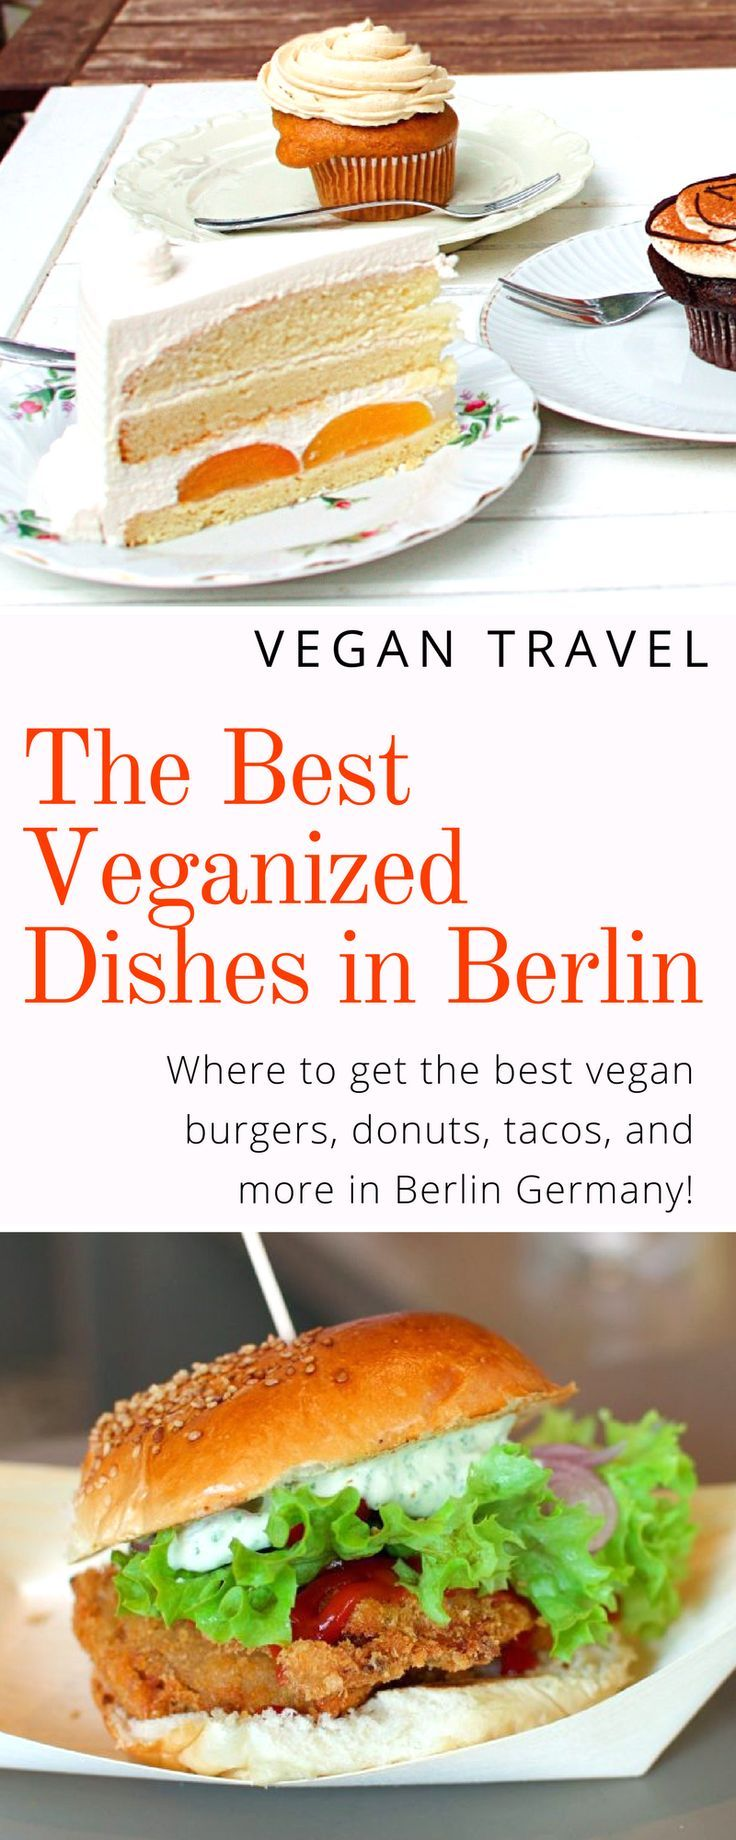 Vegan Guide To Berlin Where To Go For The Best Veganized Burgers Tacos Donuts And More In Berlin Vegan Restaurants Best Vegan Restaurants Vegetarian Travel